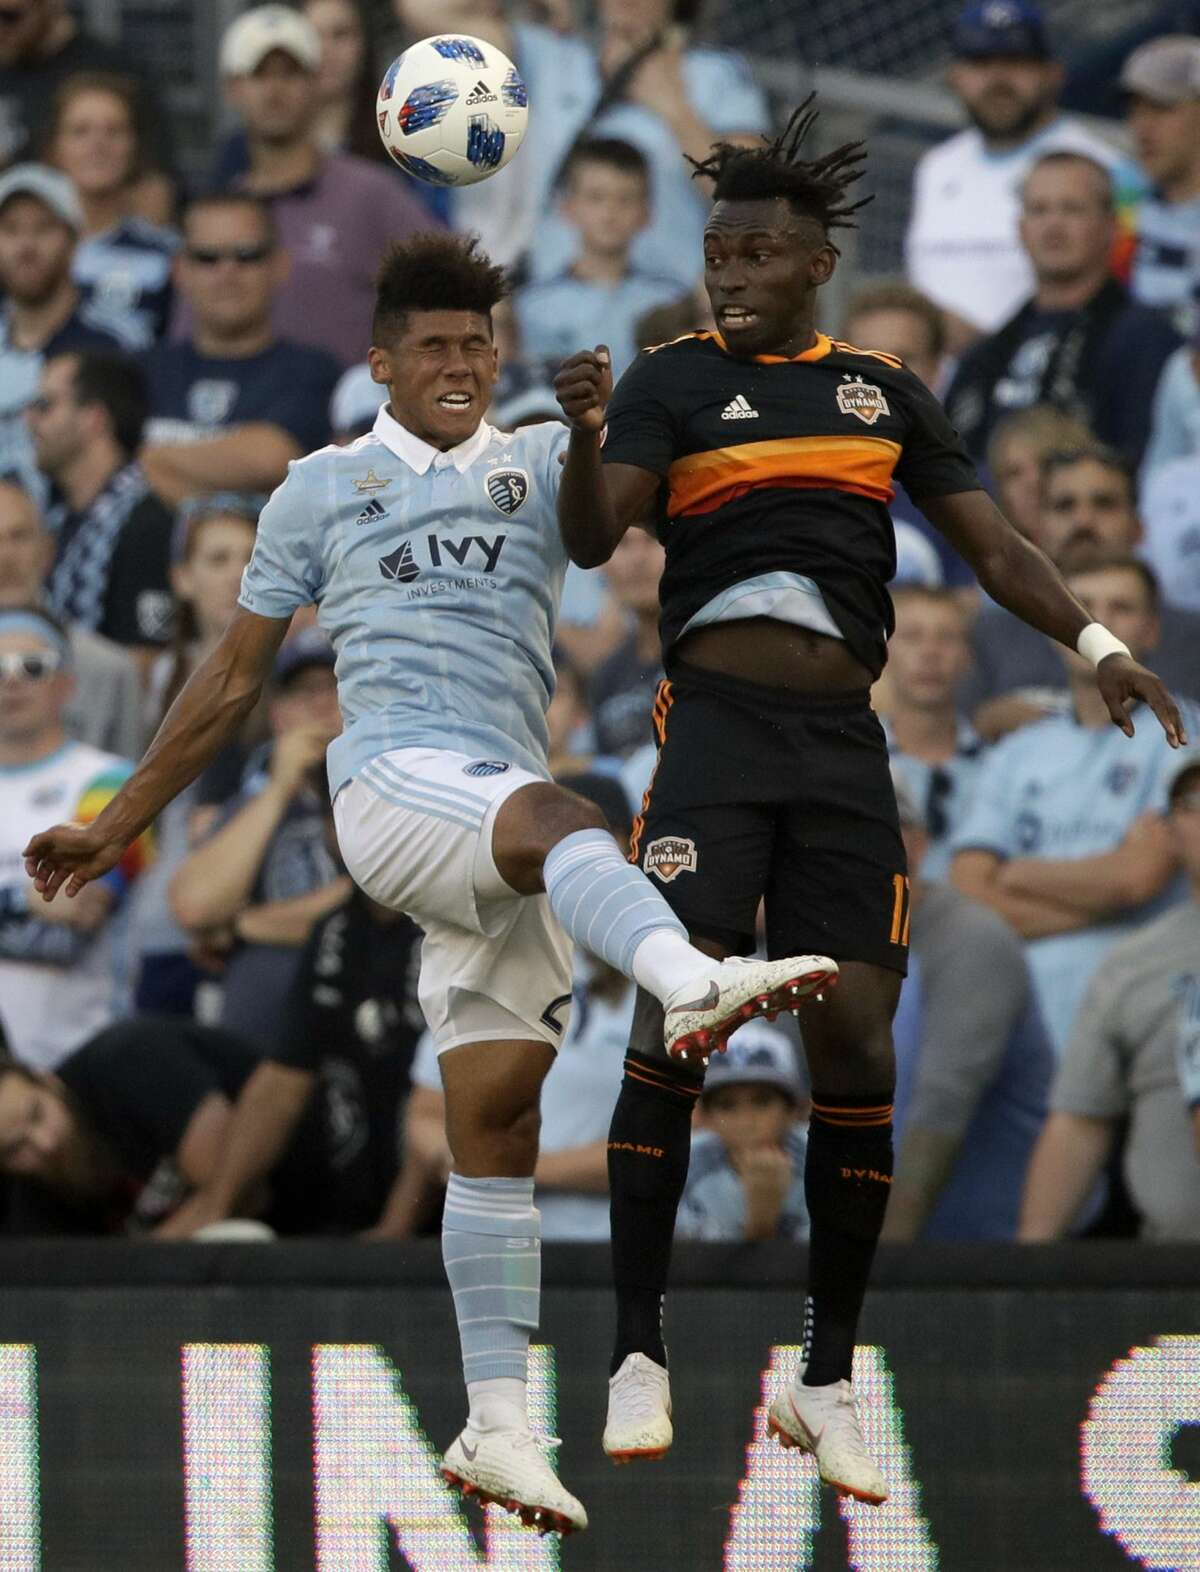 Sporting Kansas City defender Jaylin Lindsey, left, heads the ball against Houston Dynamo forward Alberth Elis, right, during the first half of an MLS soccer match in Kansas City, Kan., Saturday, June 23, 2018. (AP Photo/Orlin Wagner)